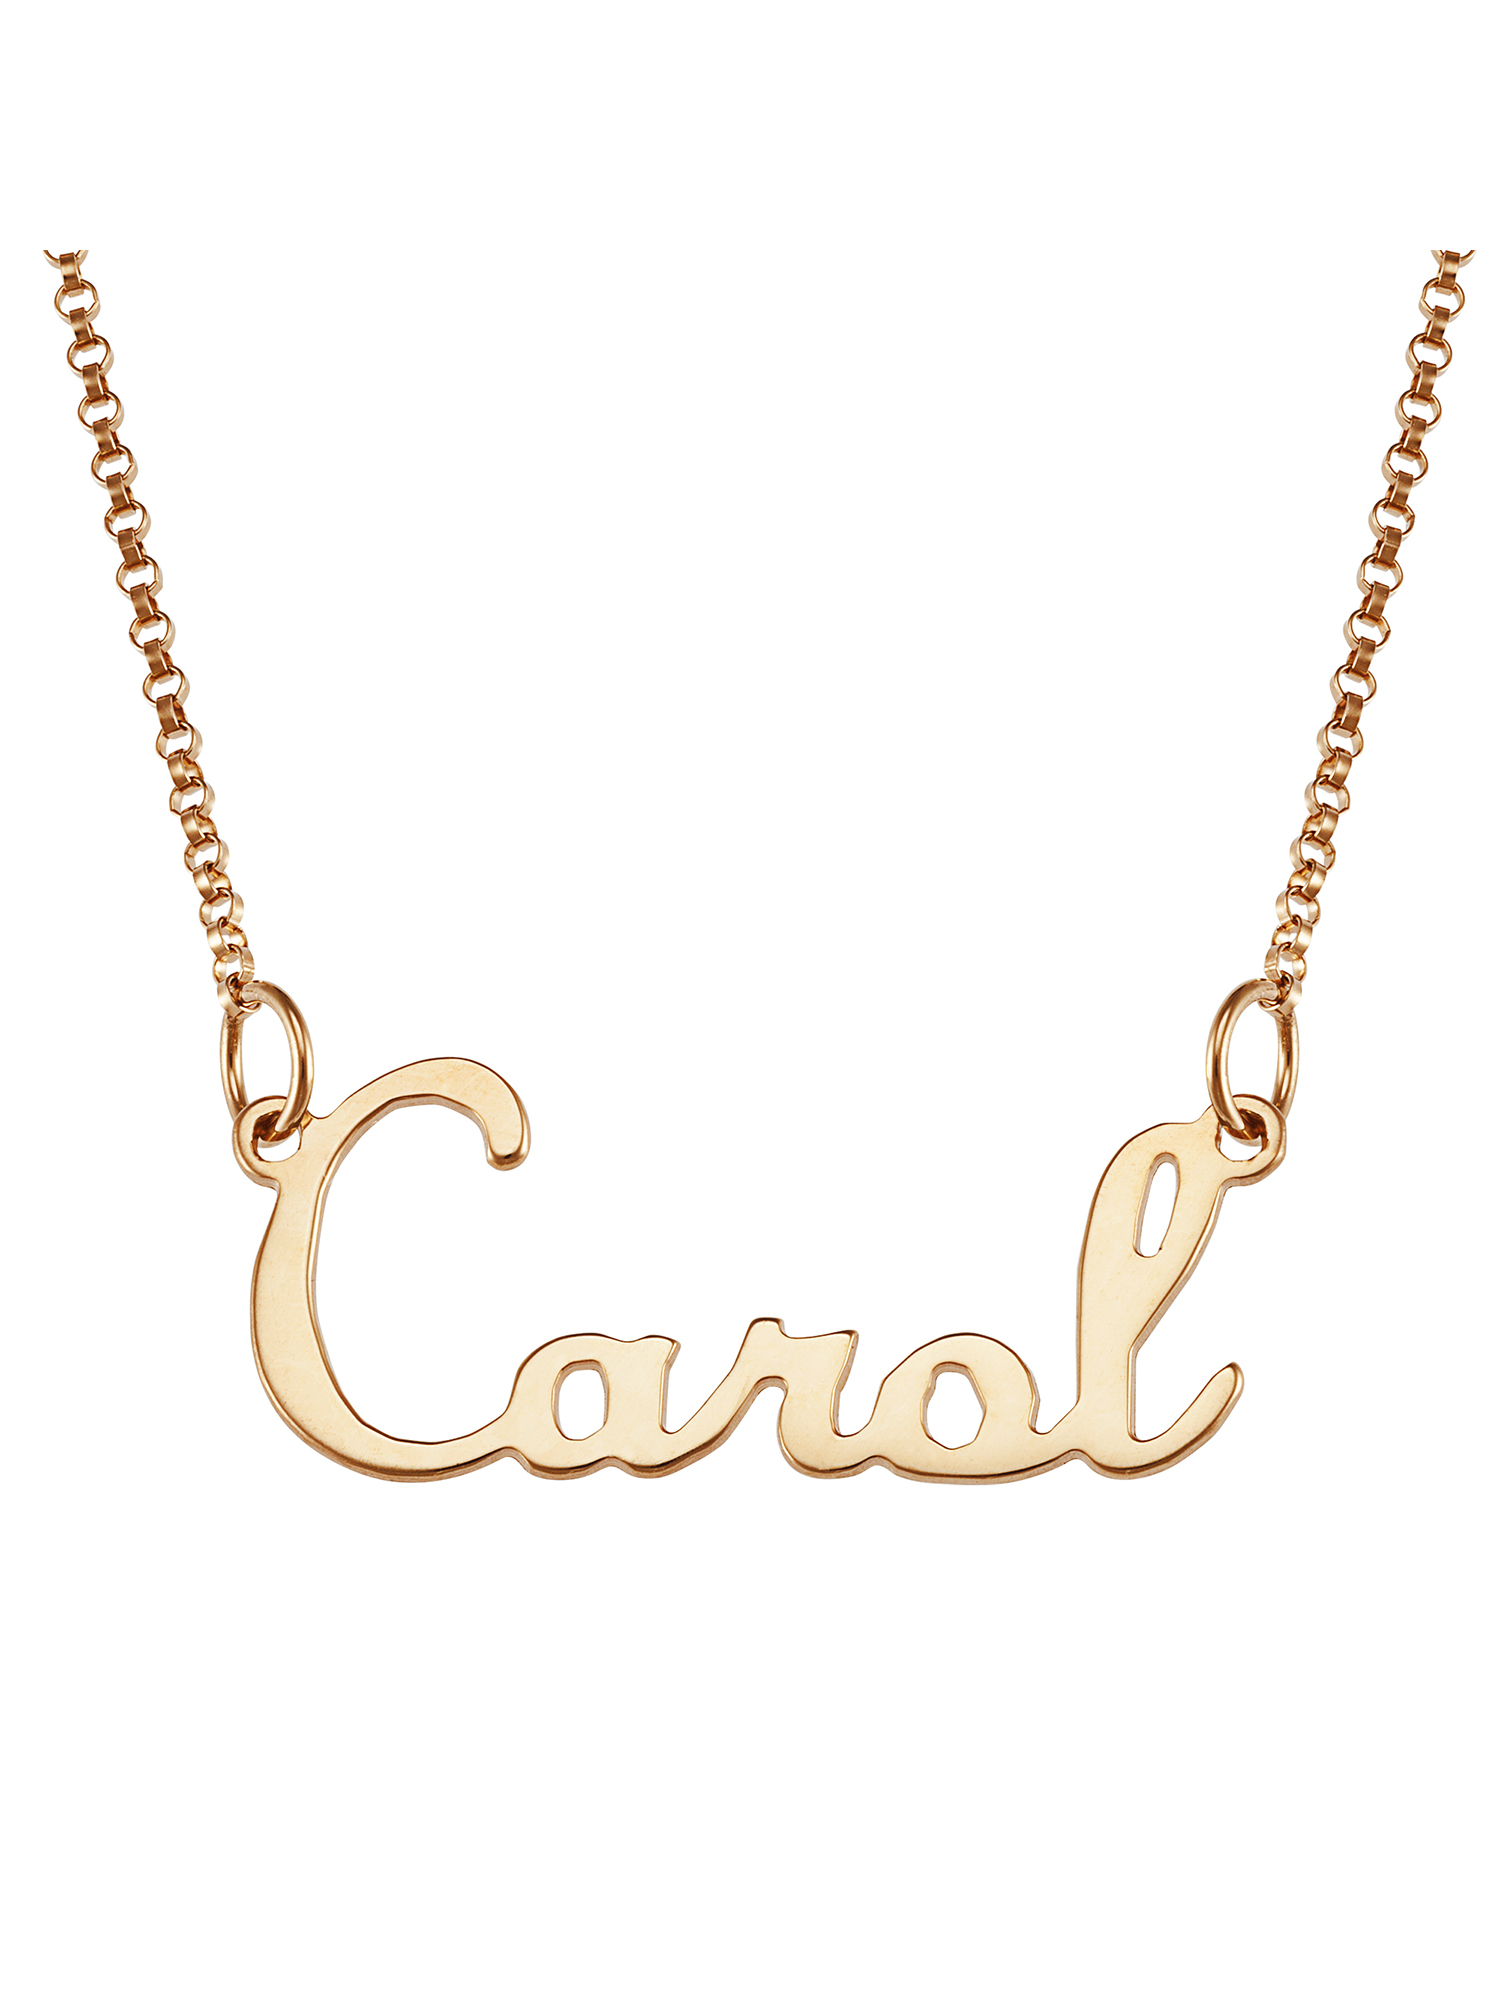 Personalized 14K Gold over Sterling Silver Script Name Necklace 18